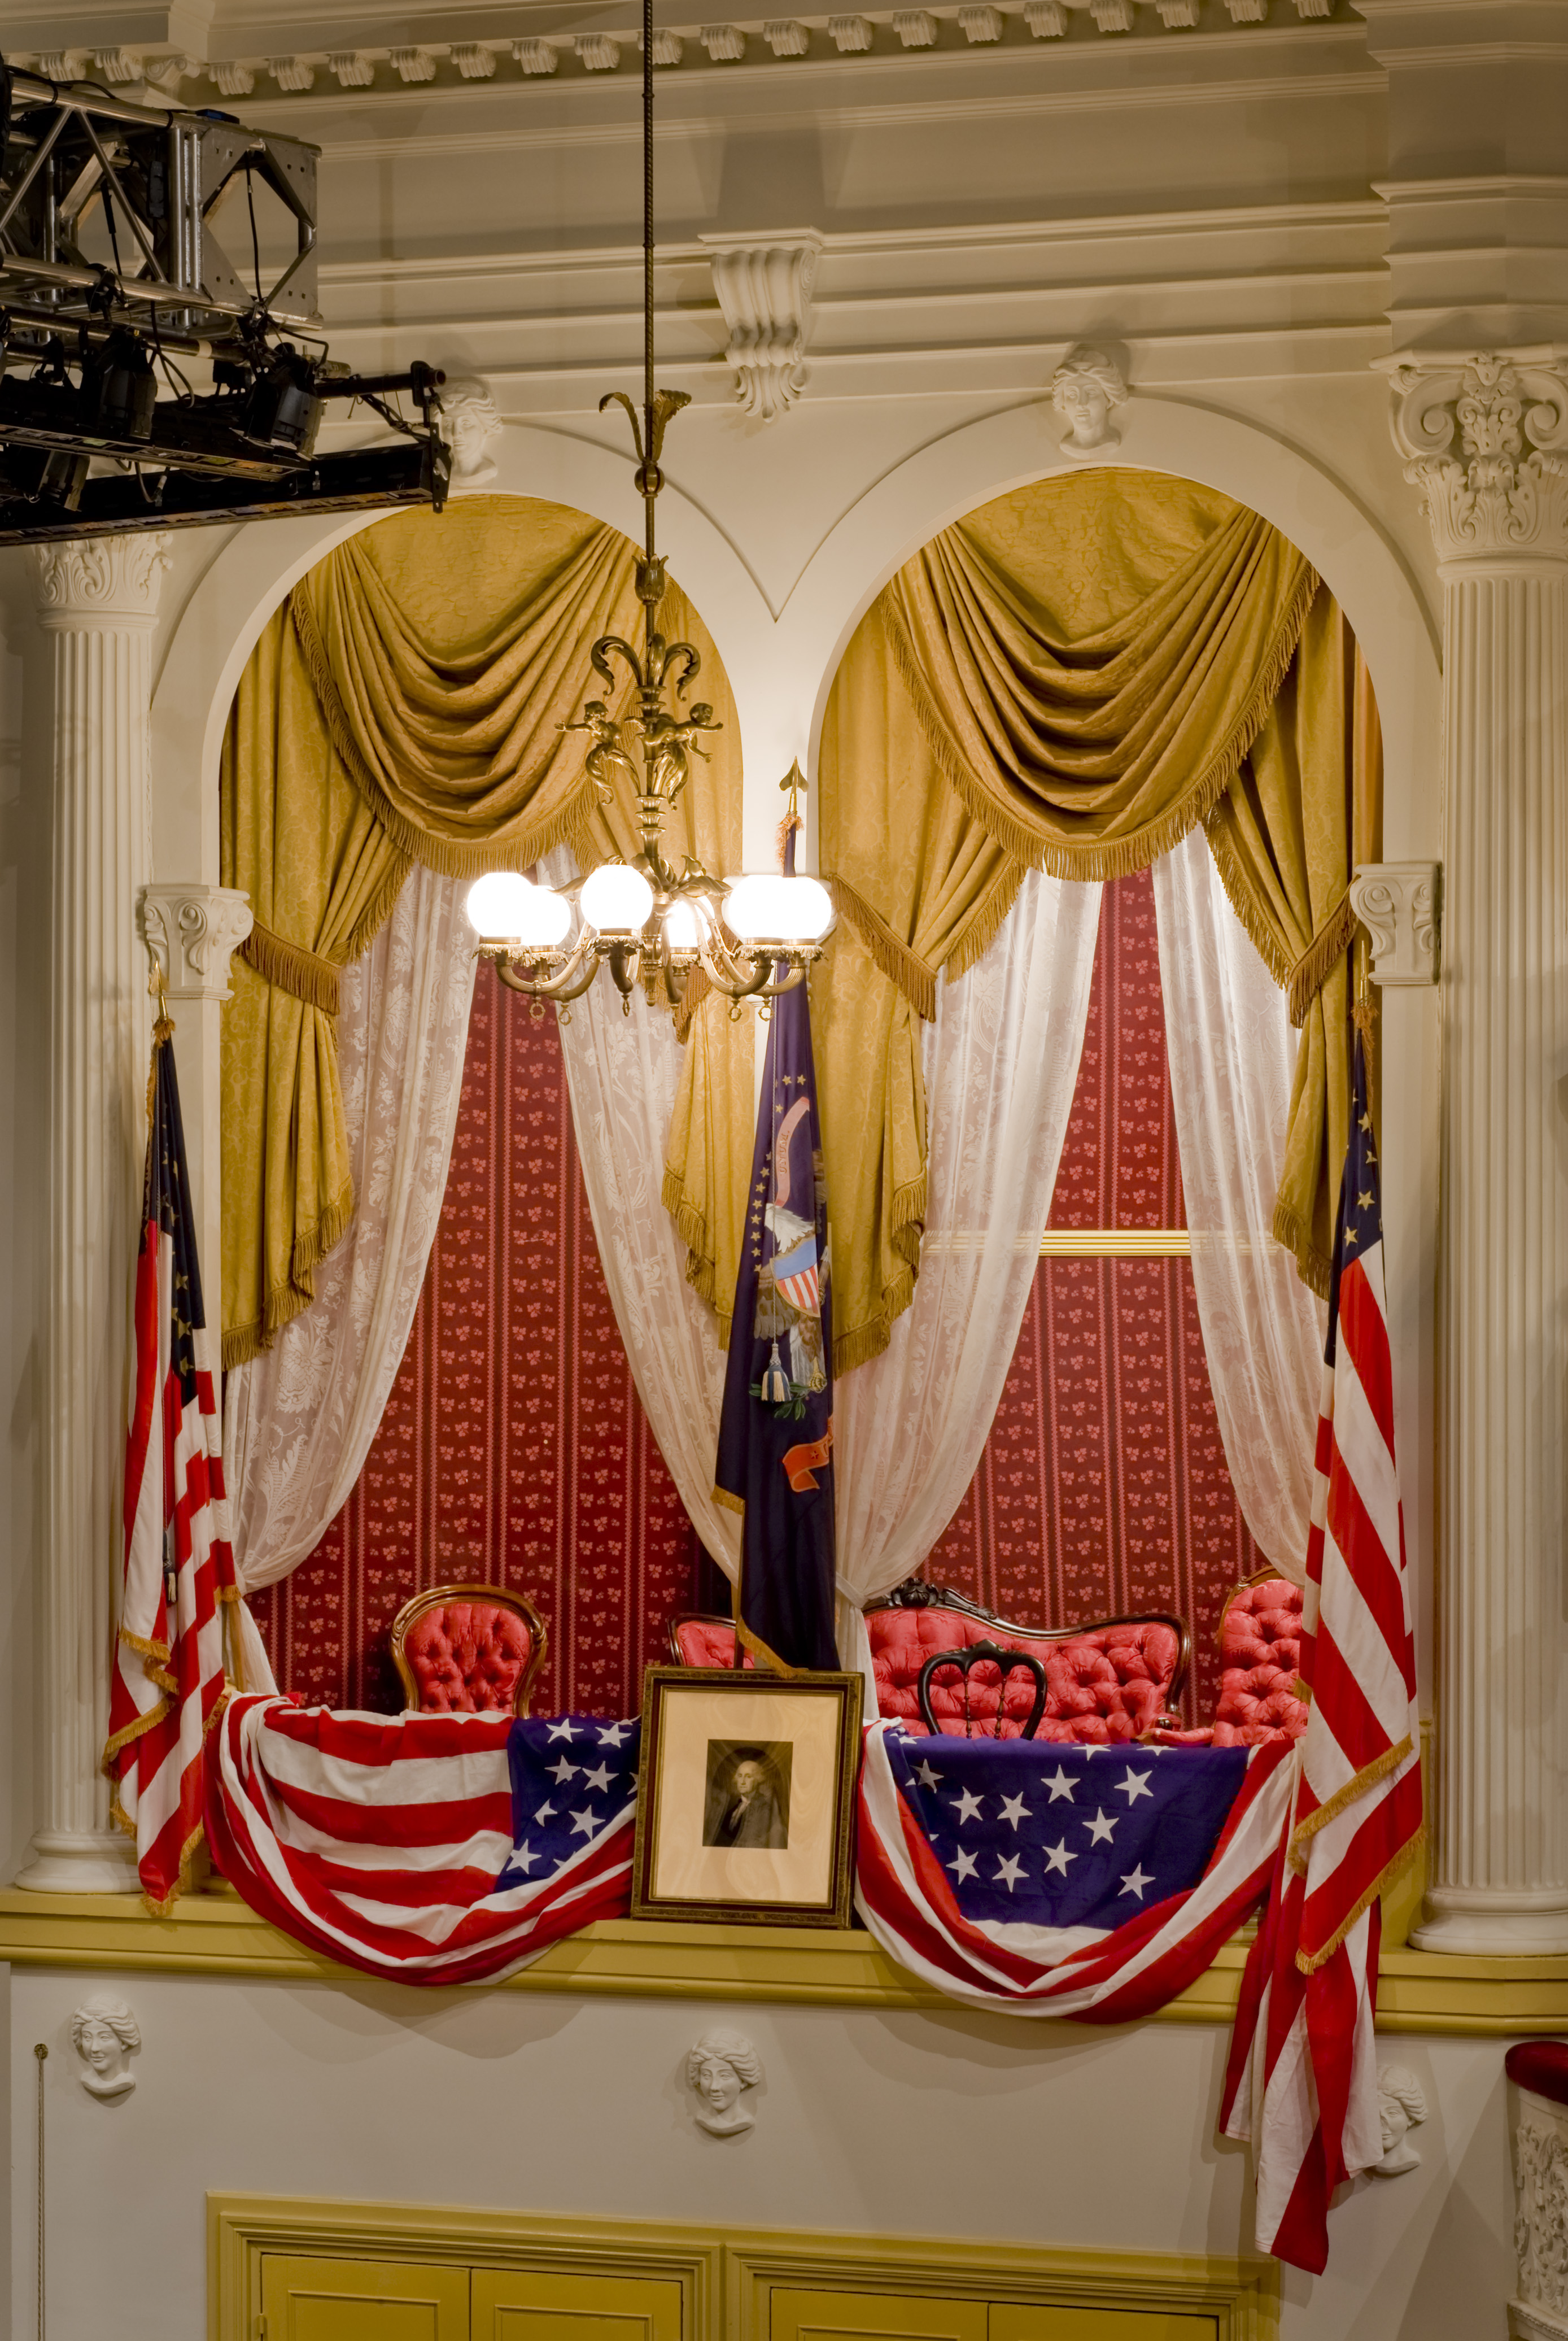 The President's Box at Ford's Theatre with American flags on either side, a picture of George Washington in the center and American flag bunting draped over the box. The interior of the box has red patterned wallpaper and red upholstered chairs and a couch. The box is framed by gold curtains with white lace curtains underneath them.